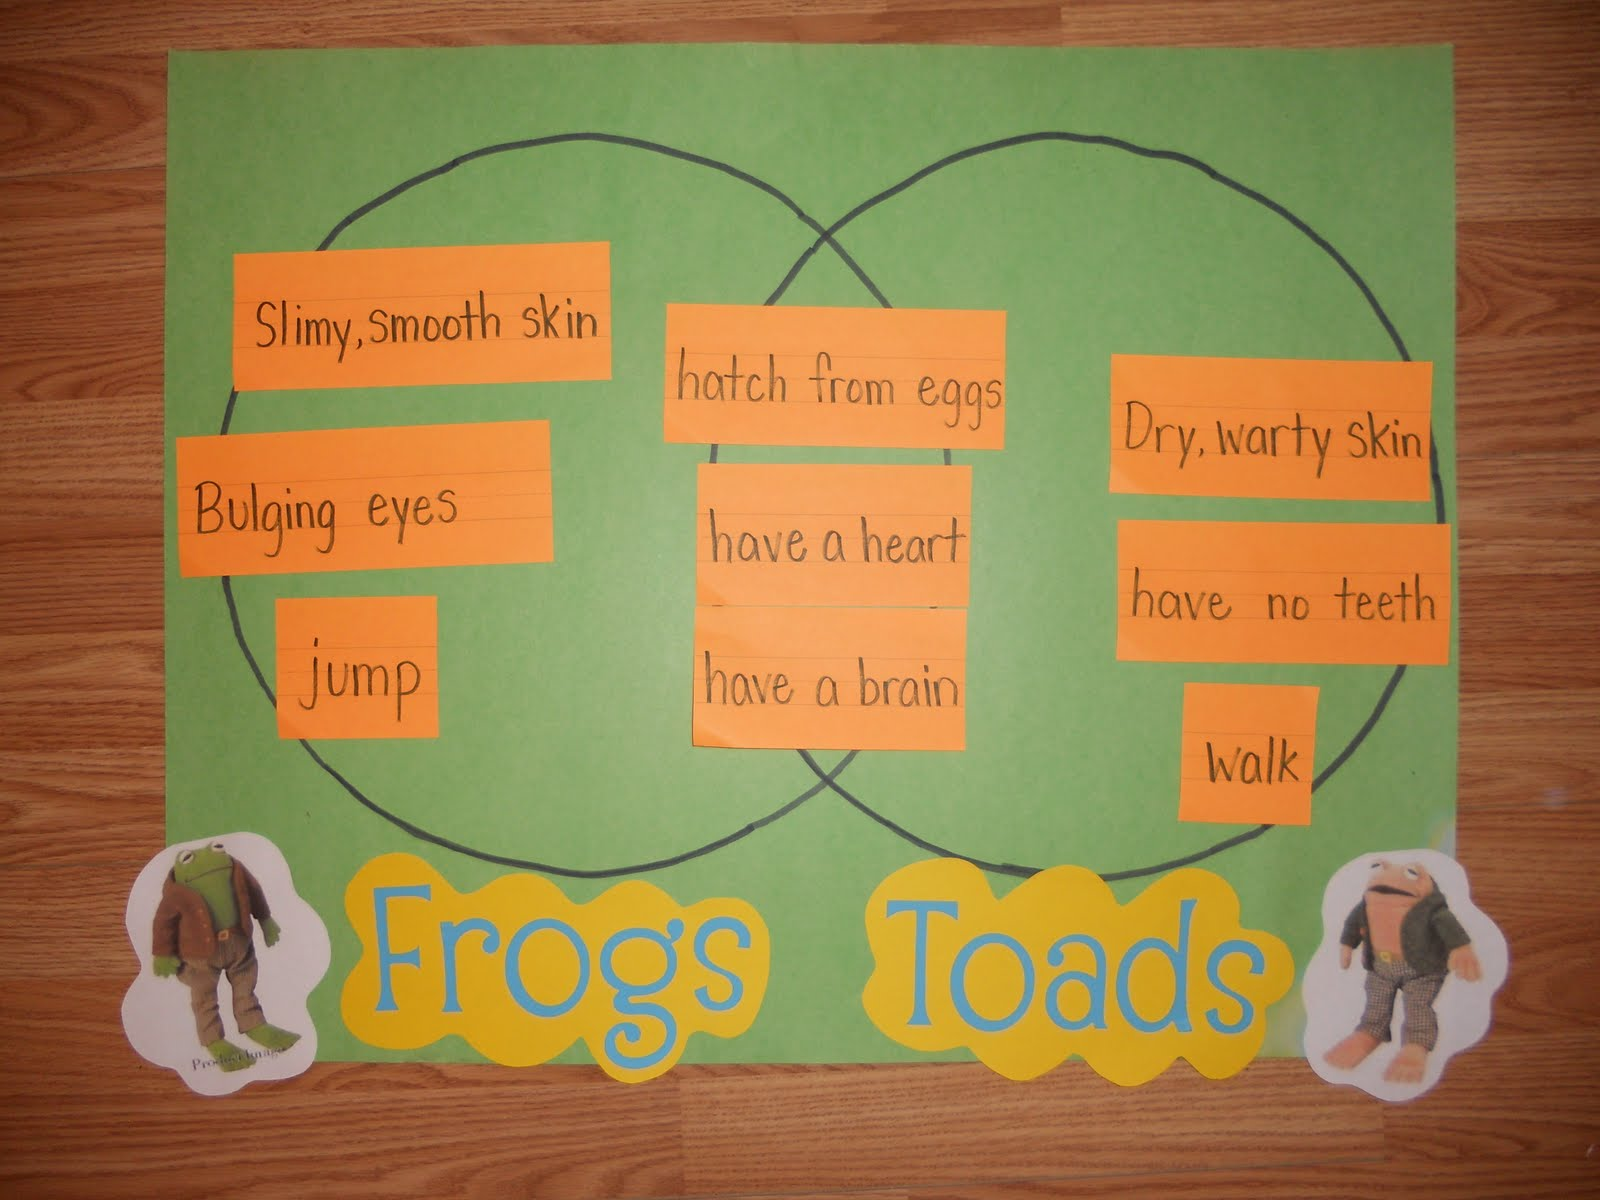 Frog And Toad Venn Diagram Home Electrical Wiring Diagrams India Life In First Grade Plant A Garden